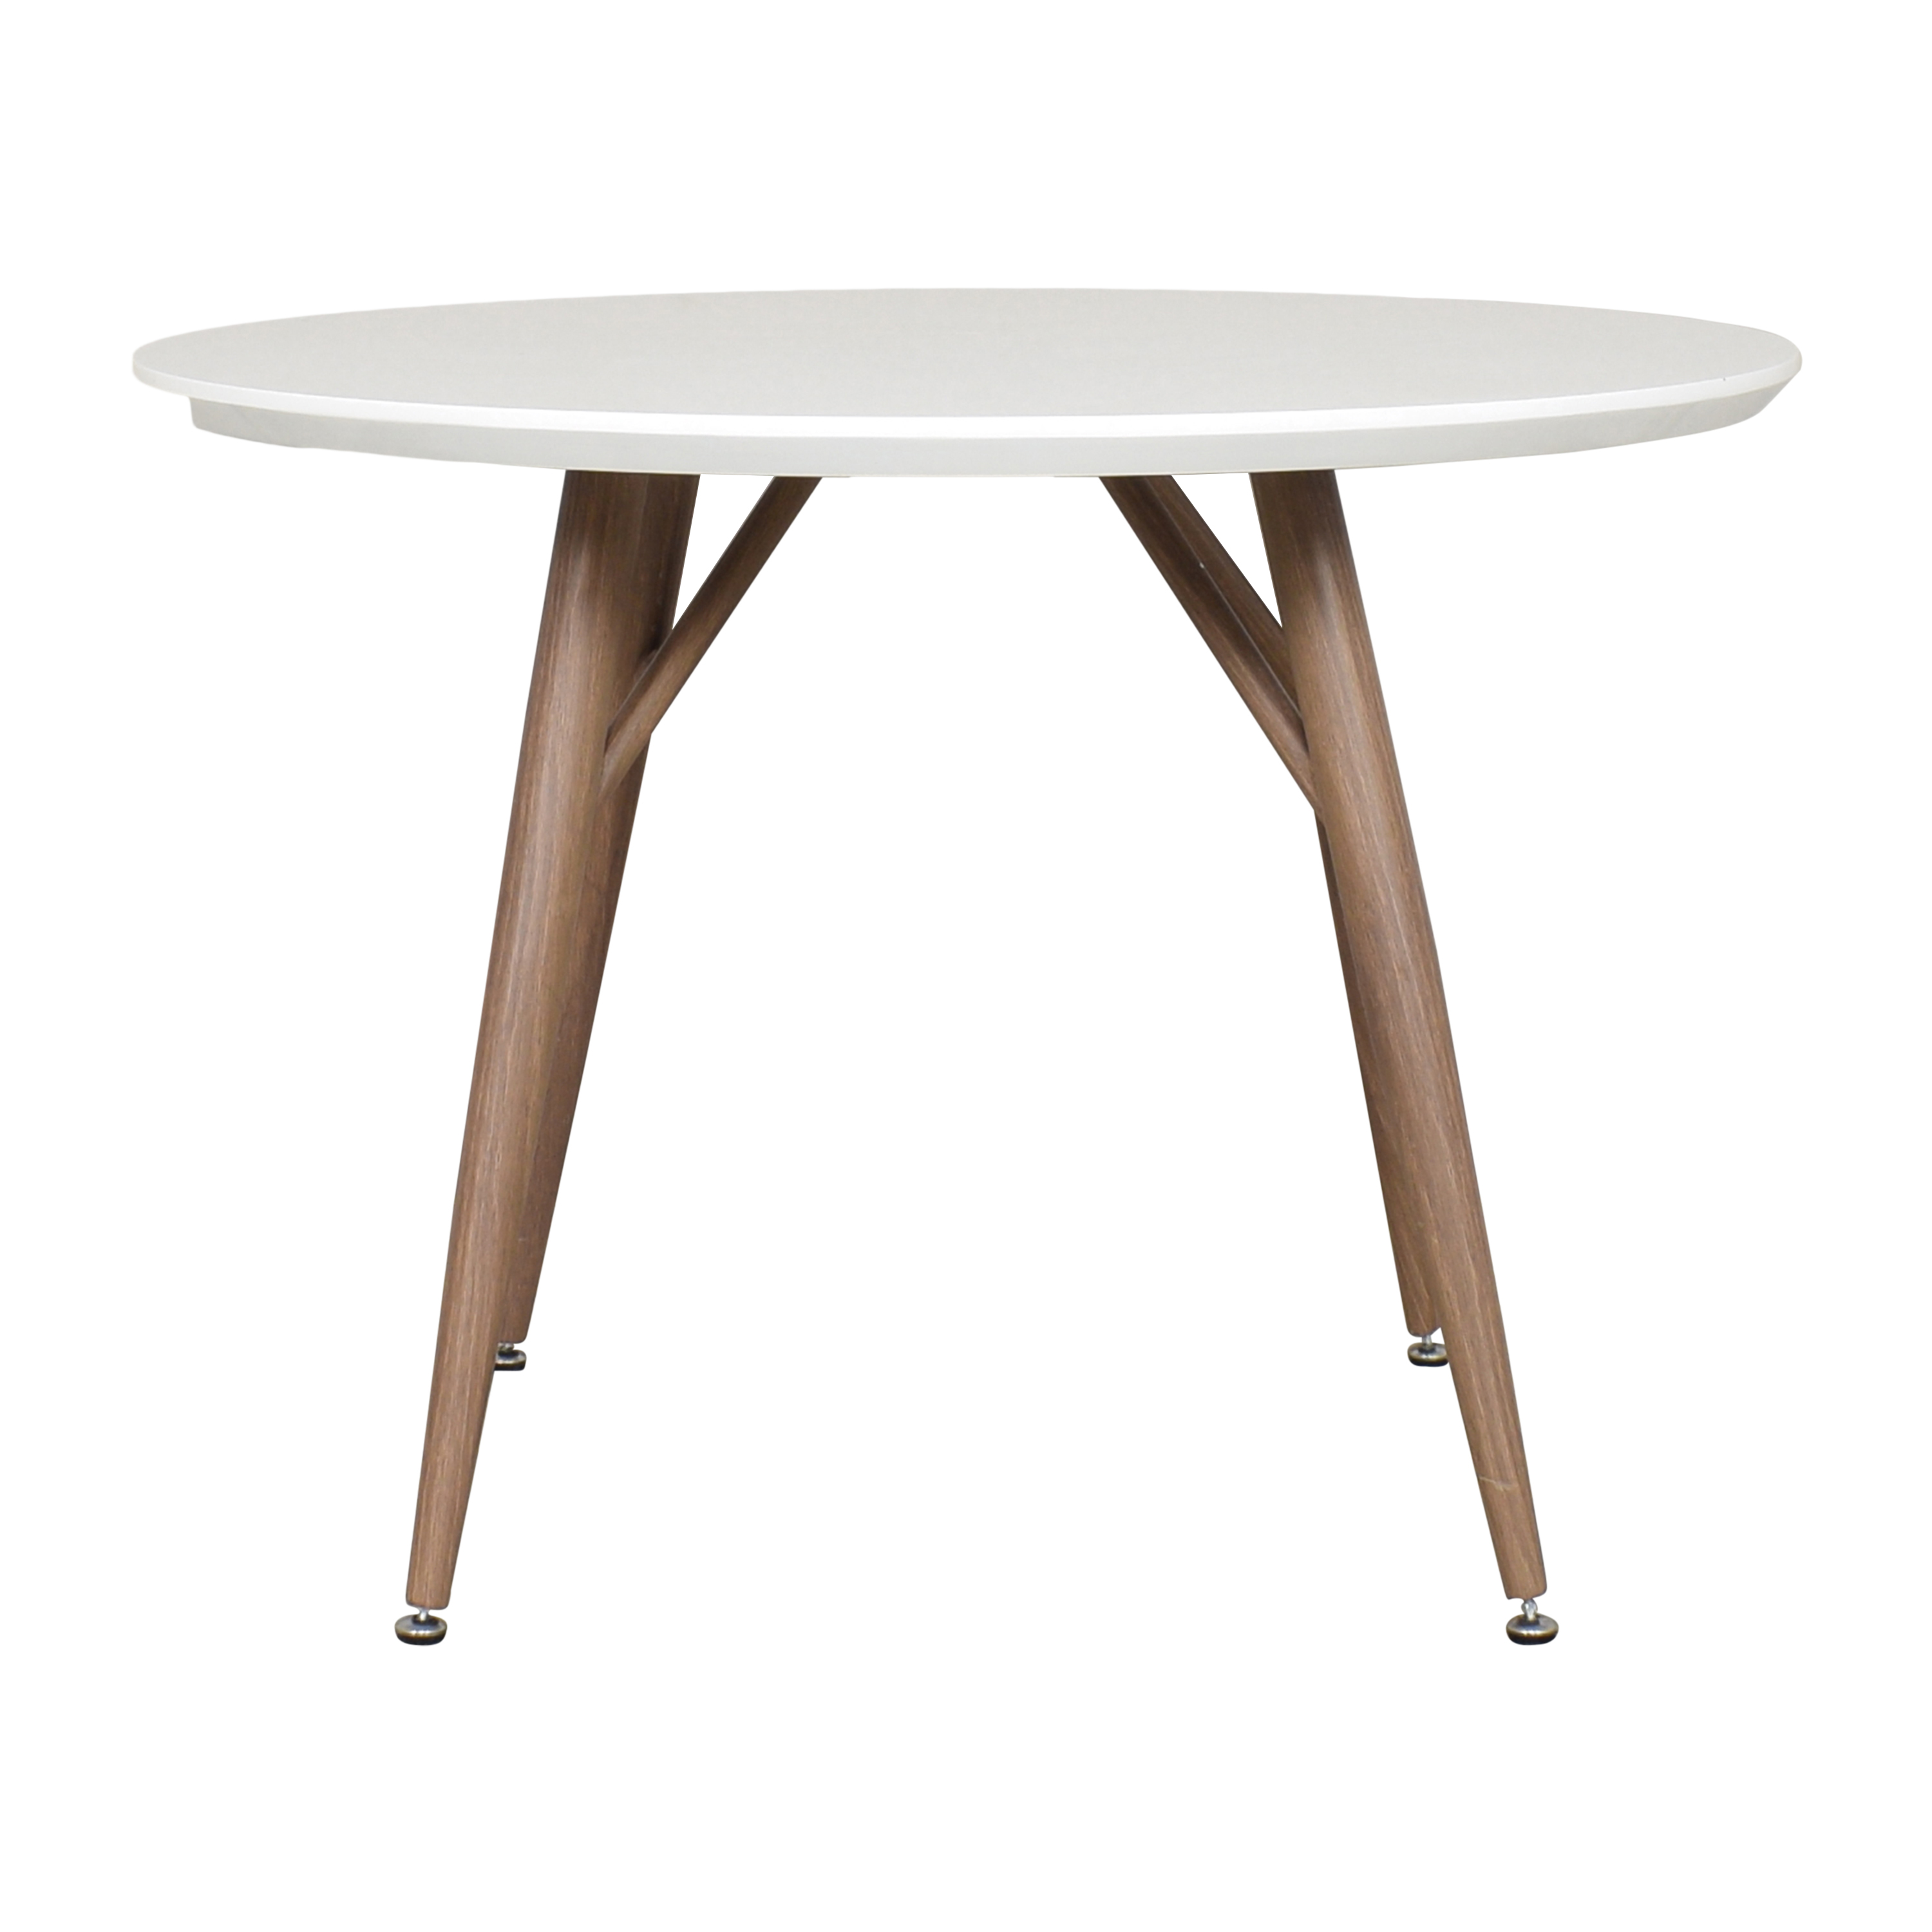 Round Modern Dining Table price